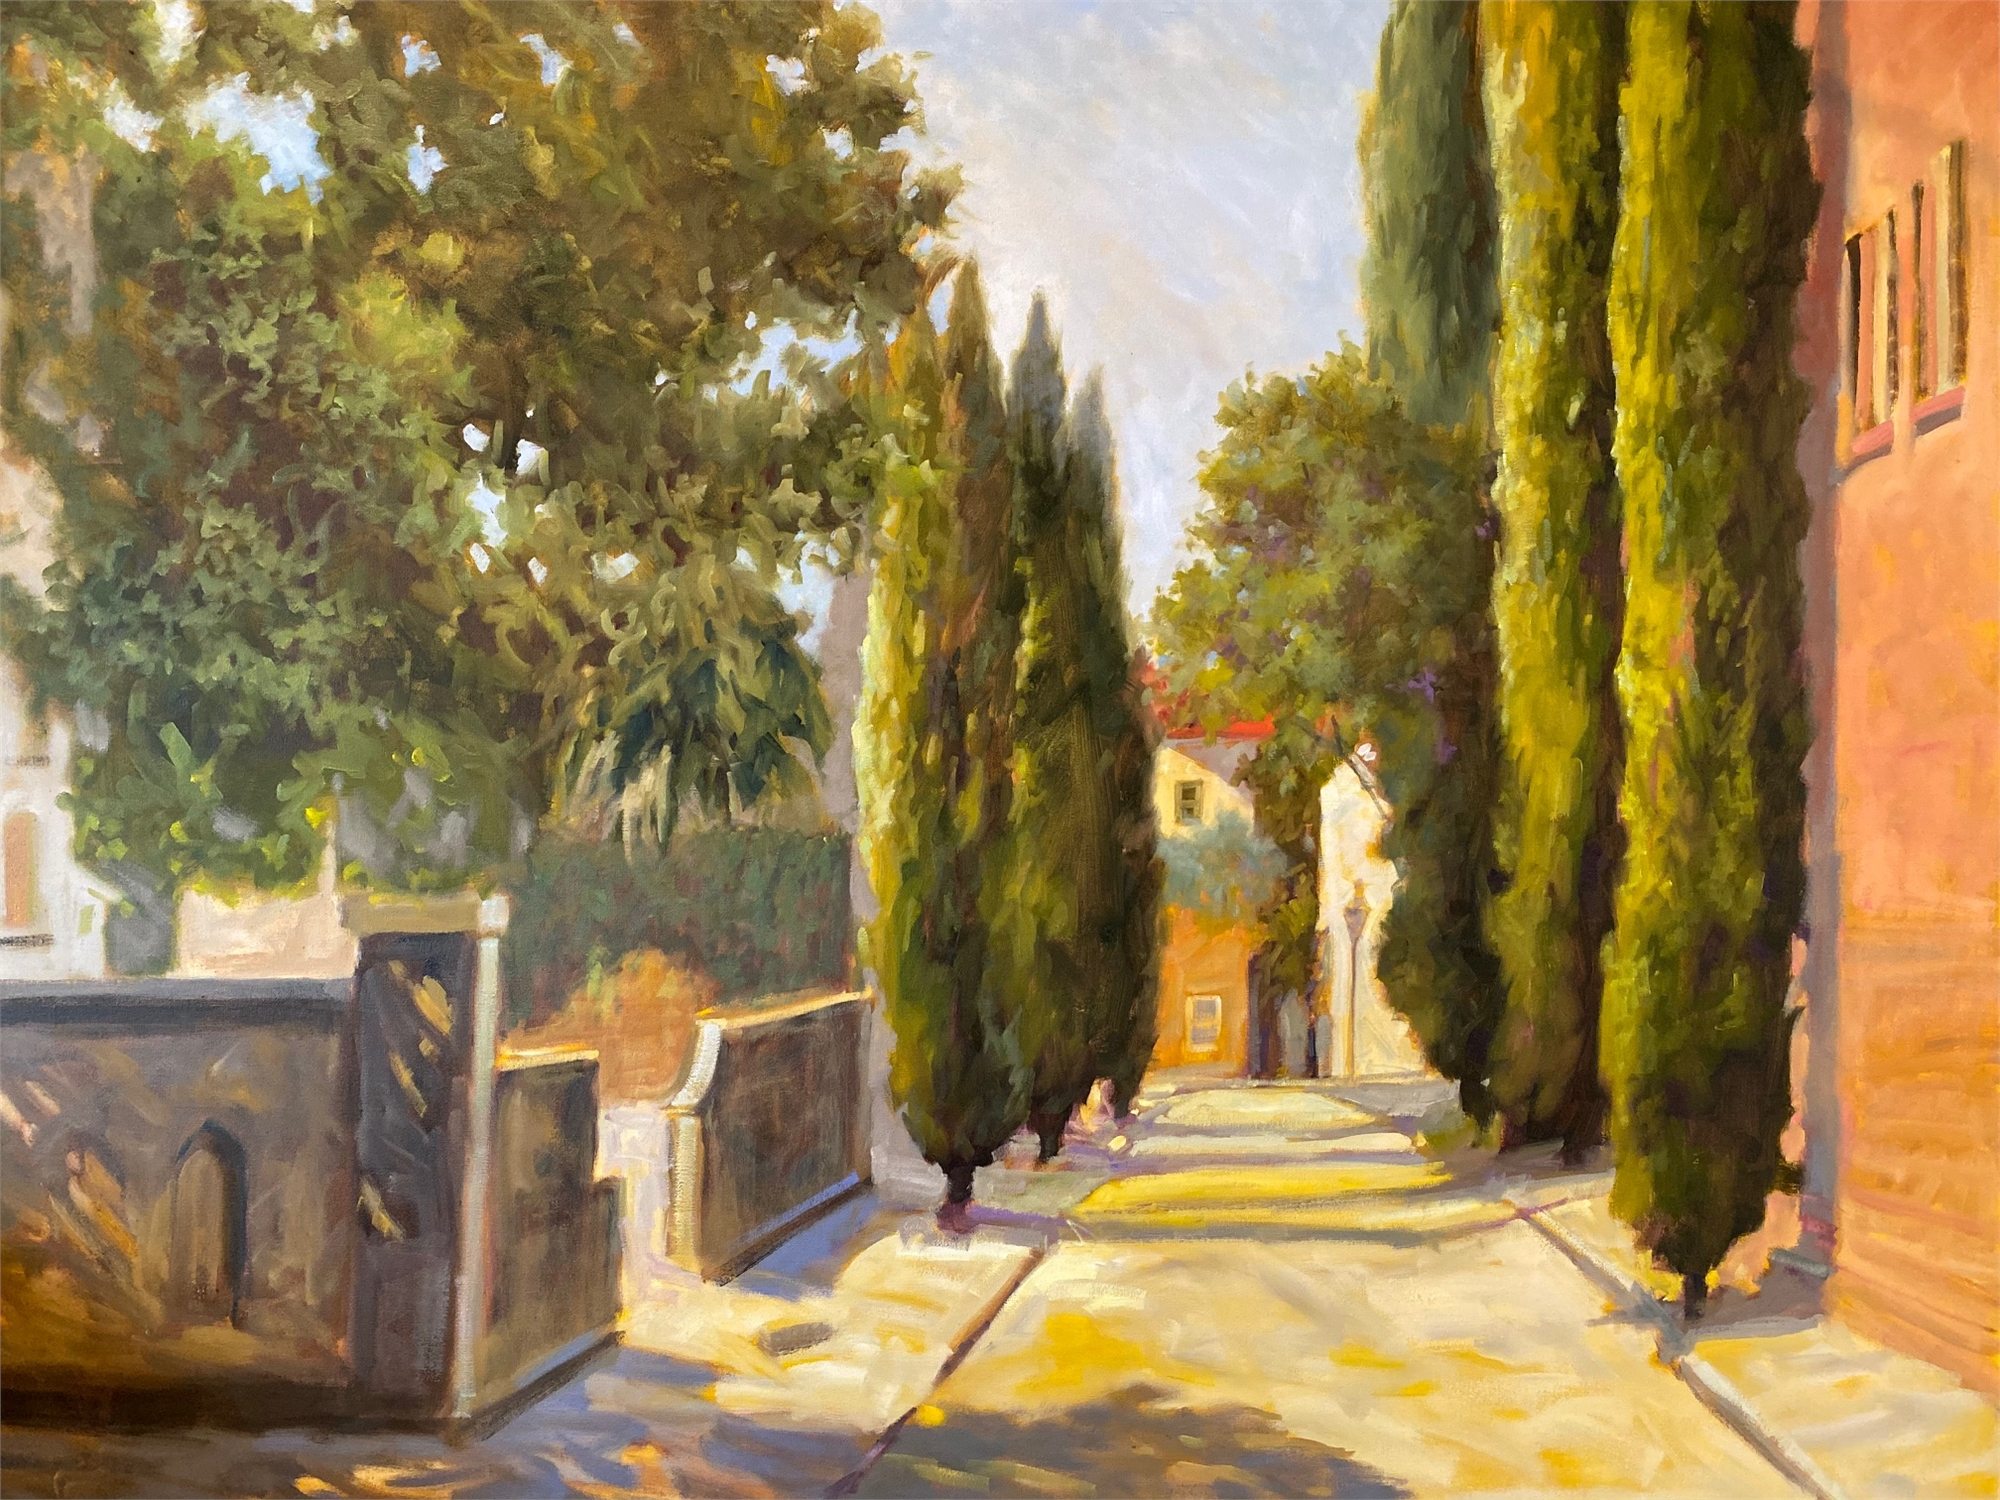 Cypress on St. Michael's Alley by Laurie Meyer